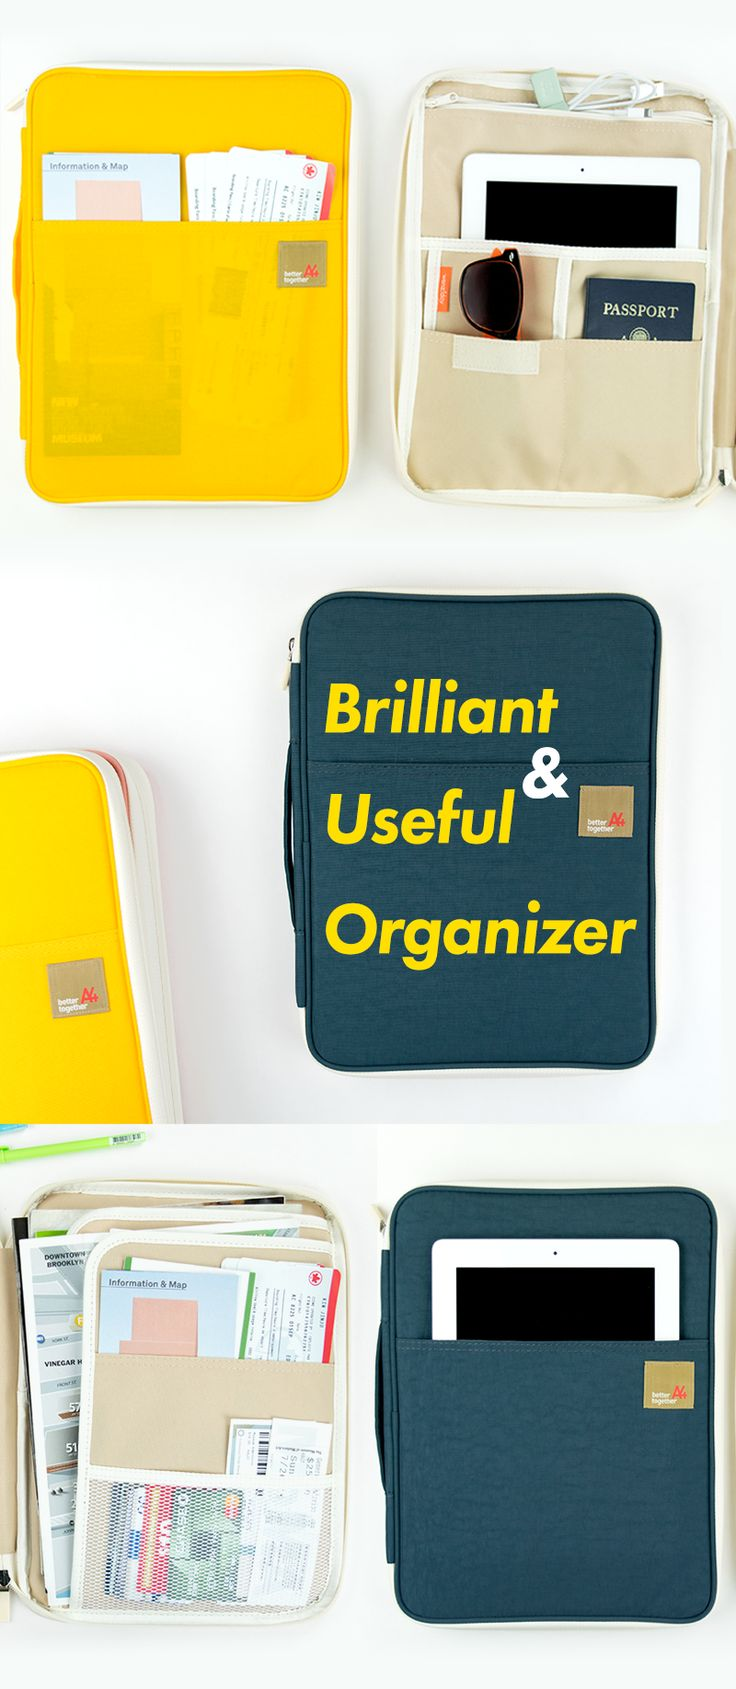 """Everyone needs a brilliant & useful organizer. Like the Better Together Note Pouch v5 with the perfect size, design, and compartments! This genius pouch has mesh, open, zippered, velcro, and padded pockets to hold everything you need. Carry your notebooks, documents, and planner supplies to work or school. Or use it to hold your passports and boarding passes during your fun travels! This pouch can even hold a 13"""" Macbook Pro! So, check it out, pick one up, and never organize the same way…"""